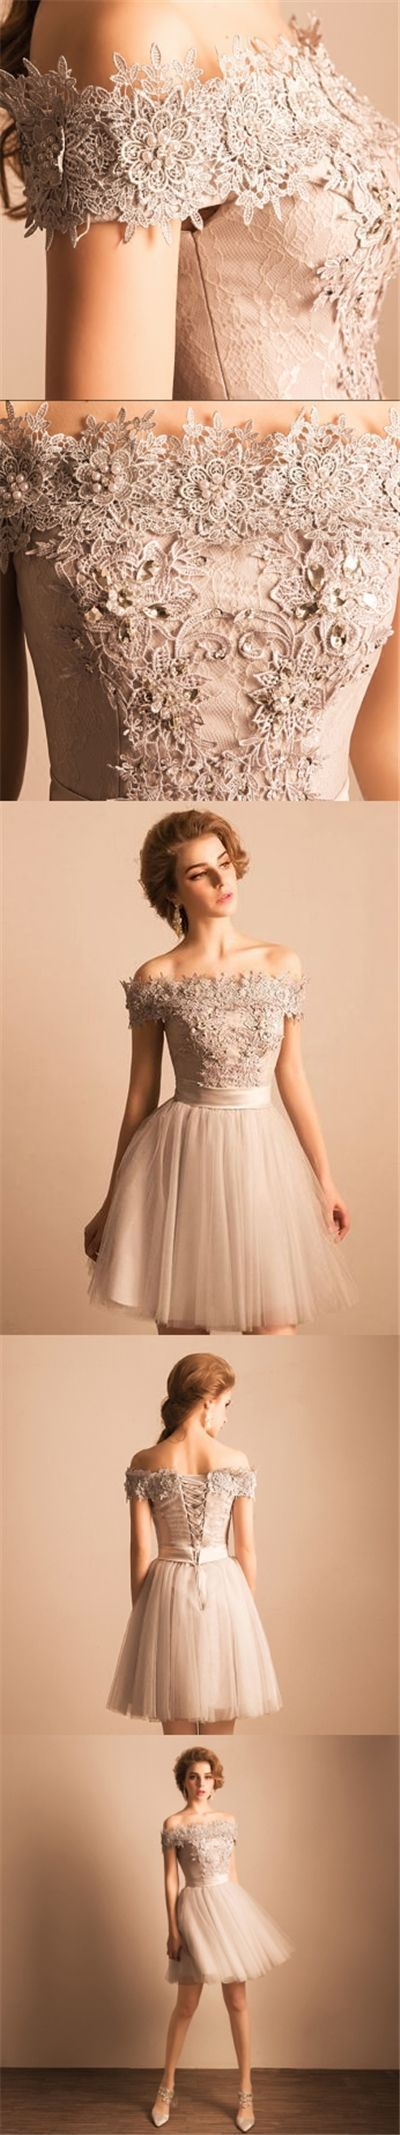 2017 Homecoming Dress Off-the-shoulder Lace Short Prom Dress Party Dress JK105